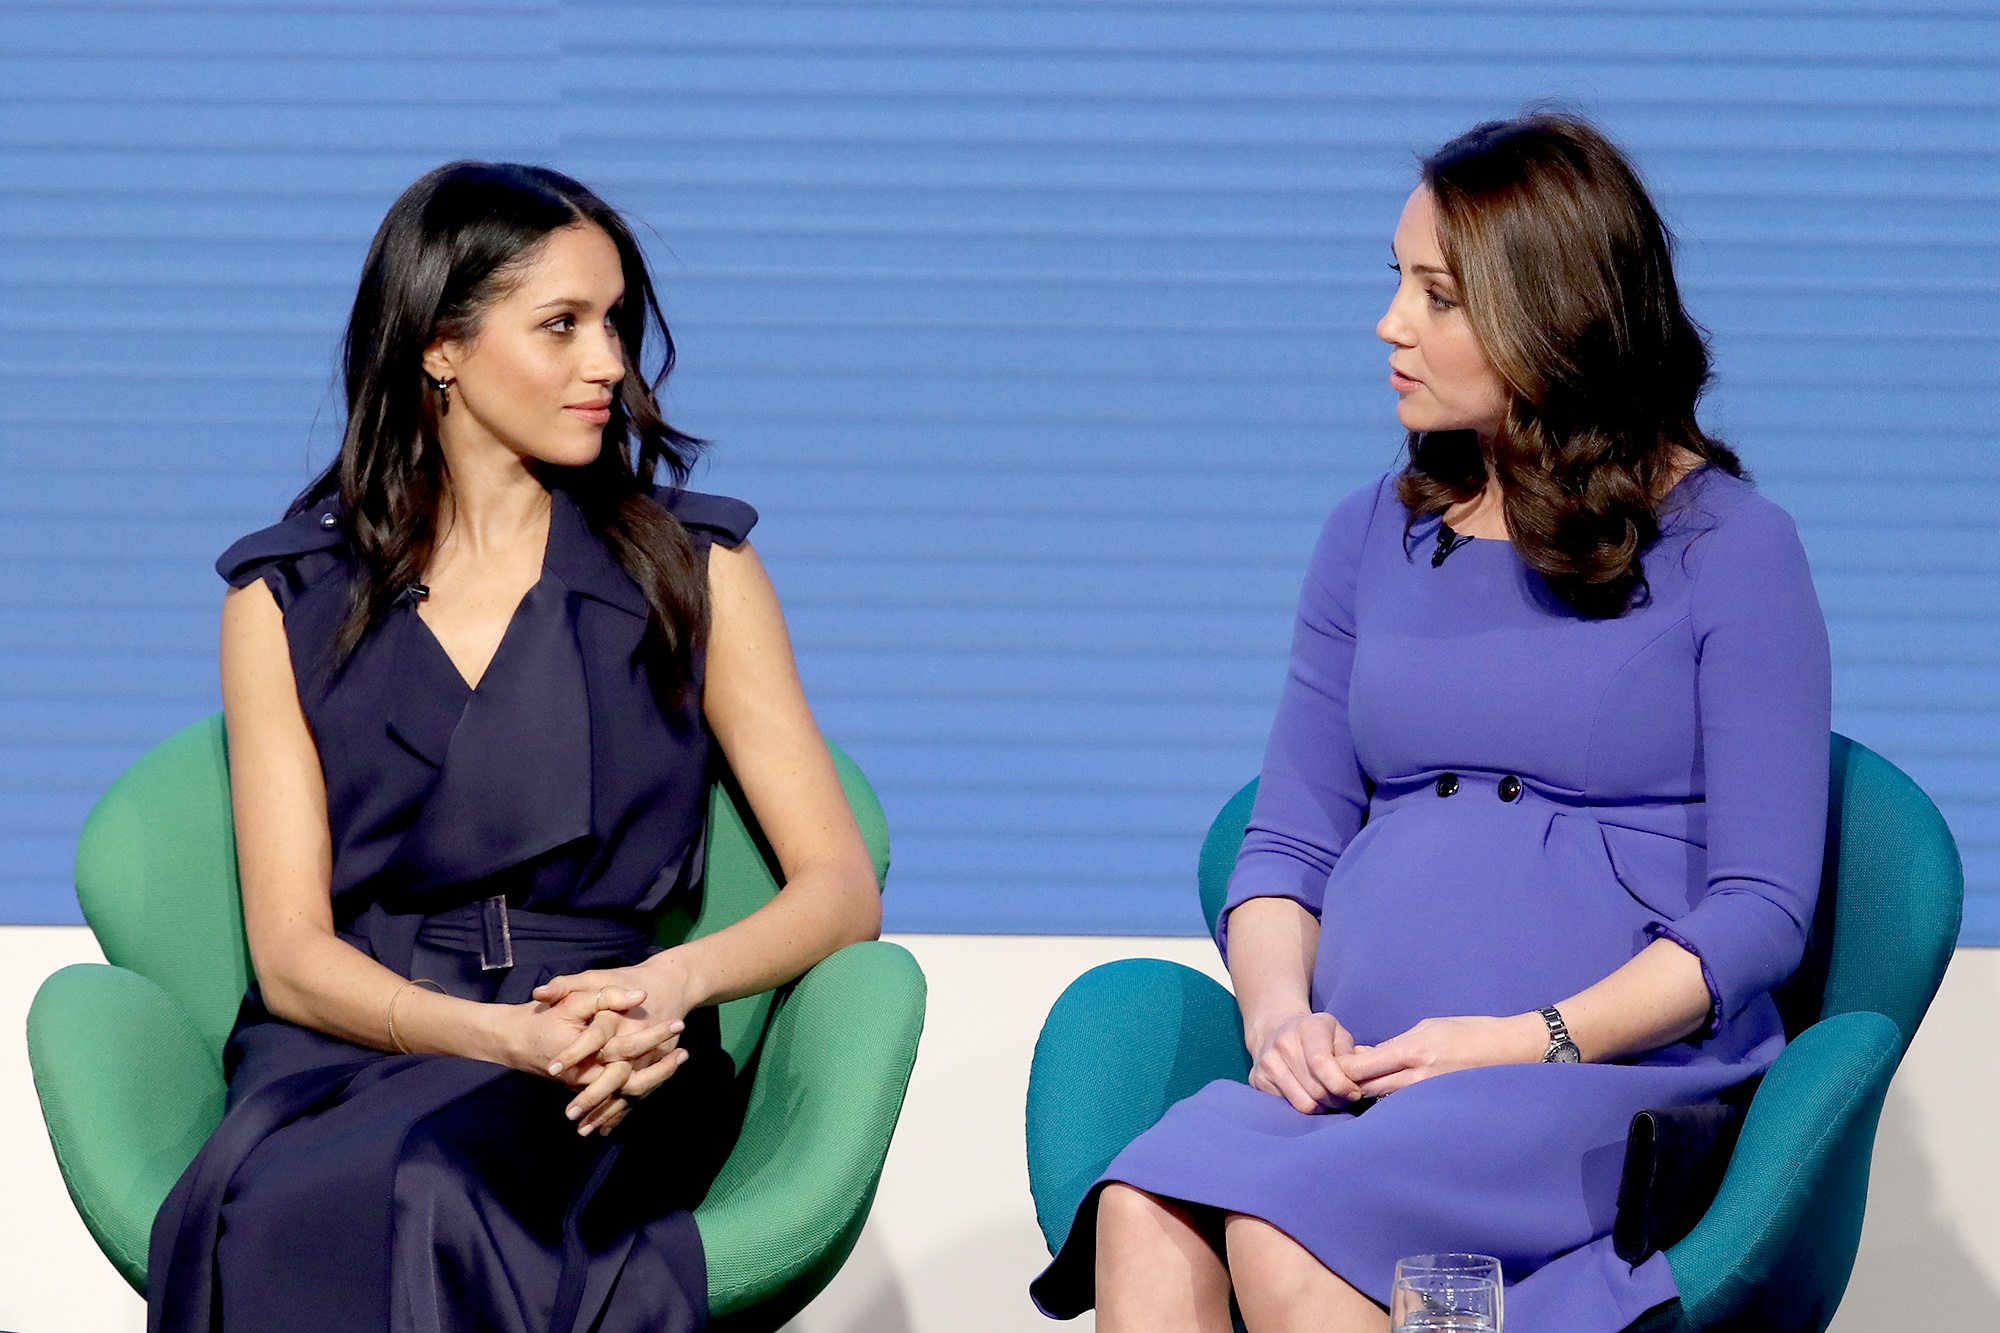 duchess-meghan-duchess-kate-feud - Reports first surfaced in November 2018 that sisters-in-law Kate and Meghan were not getting along. Speculation increased after the former actress and Harry decided to move from London to Windsor, which is further away from the Duke and Duchess of Cambridge's home in Kensington Palace.